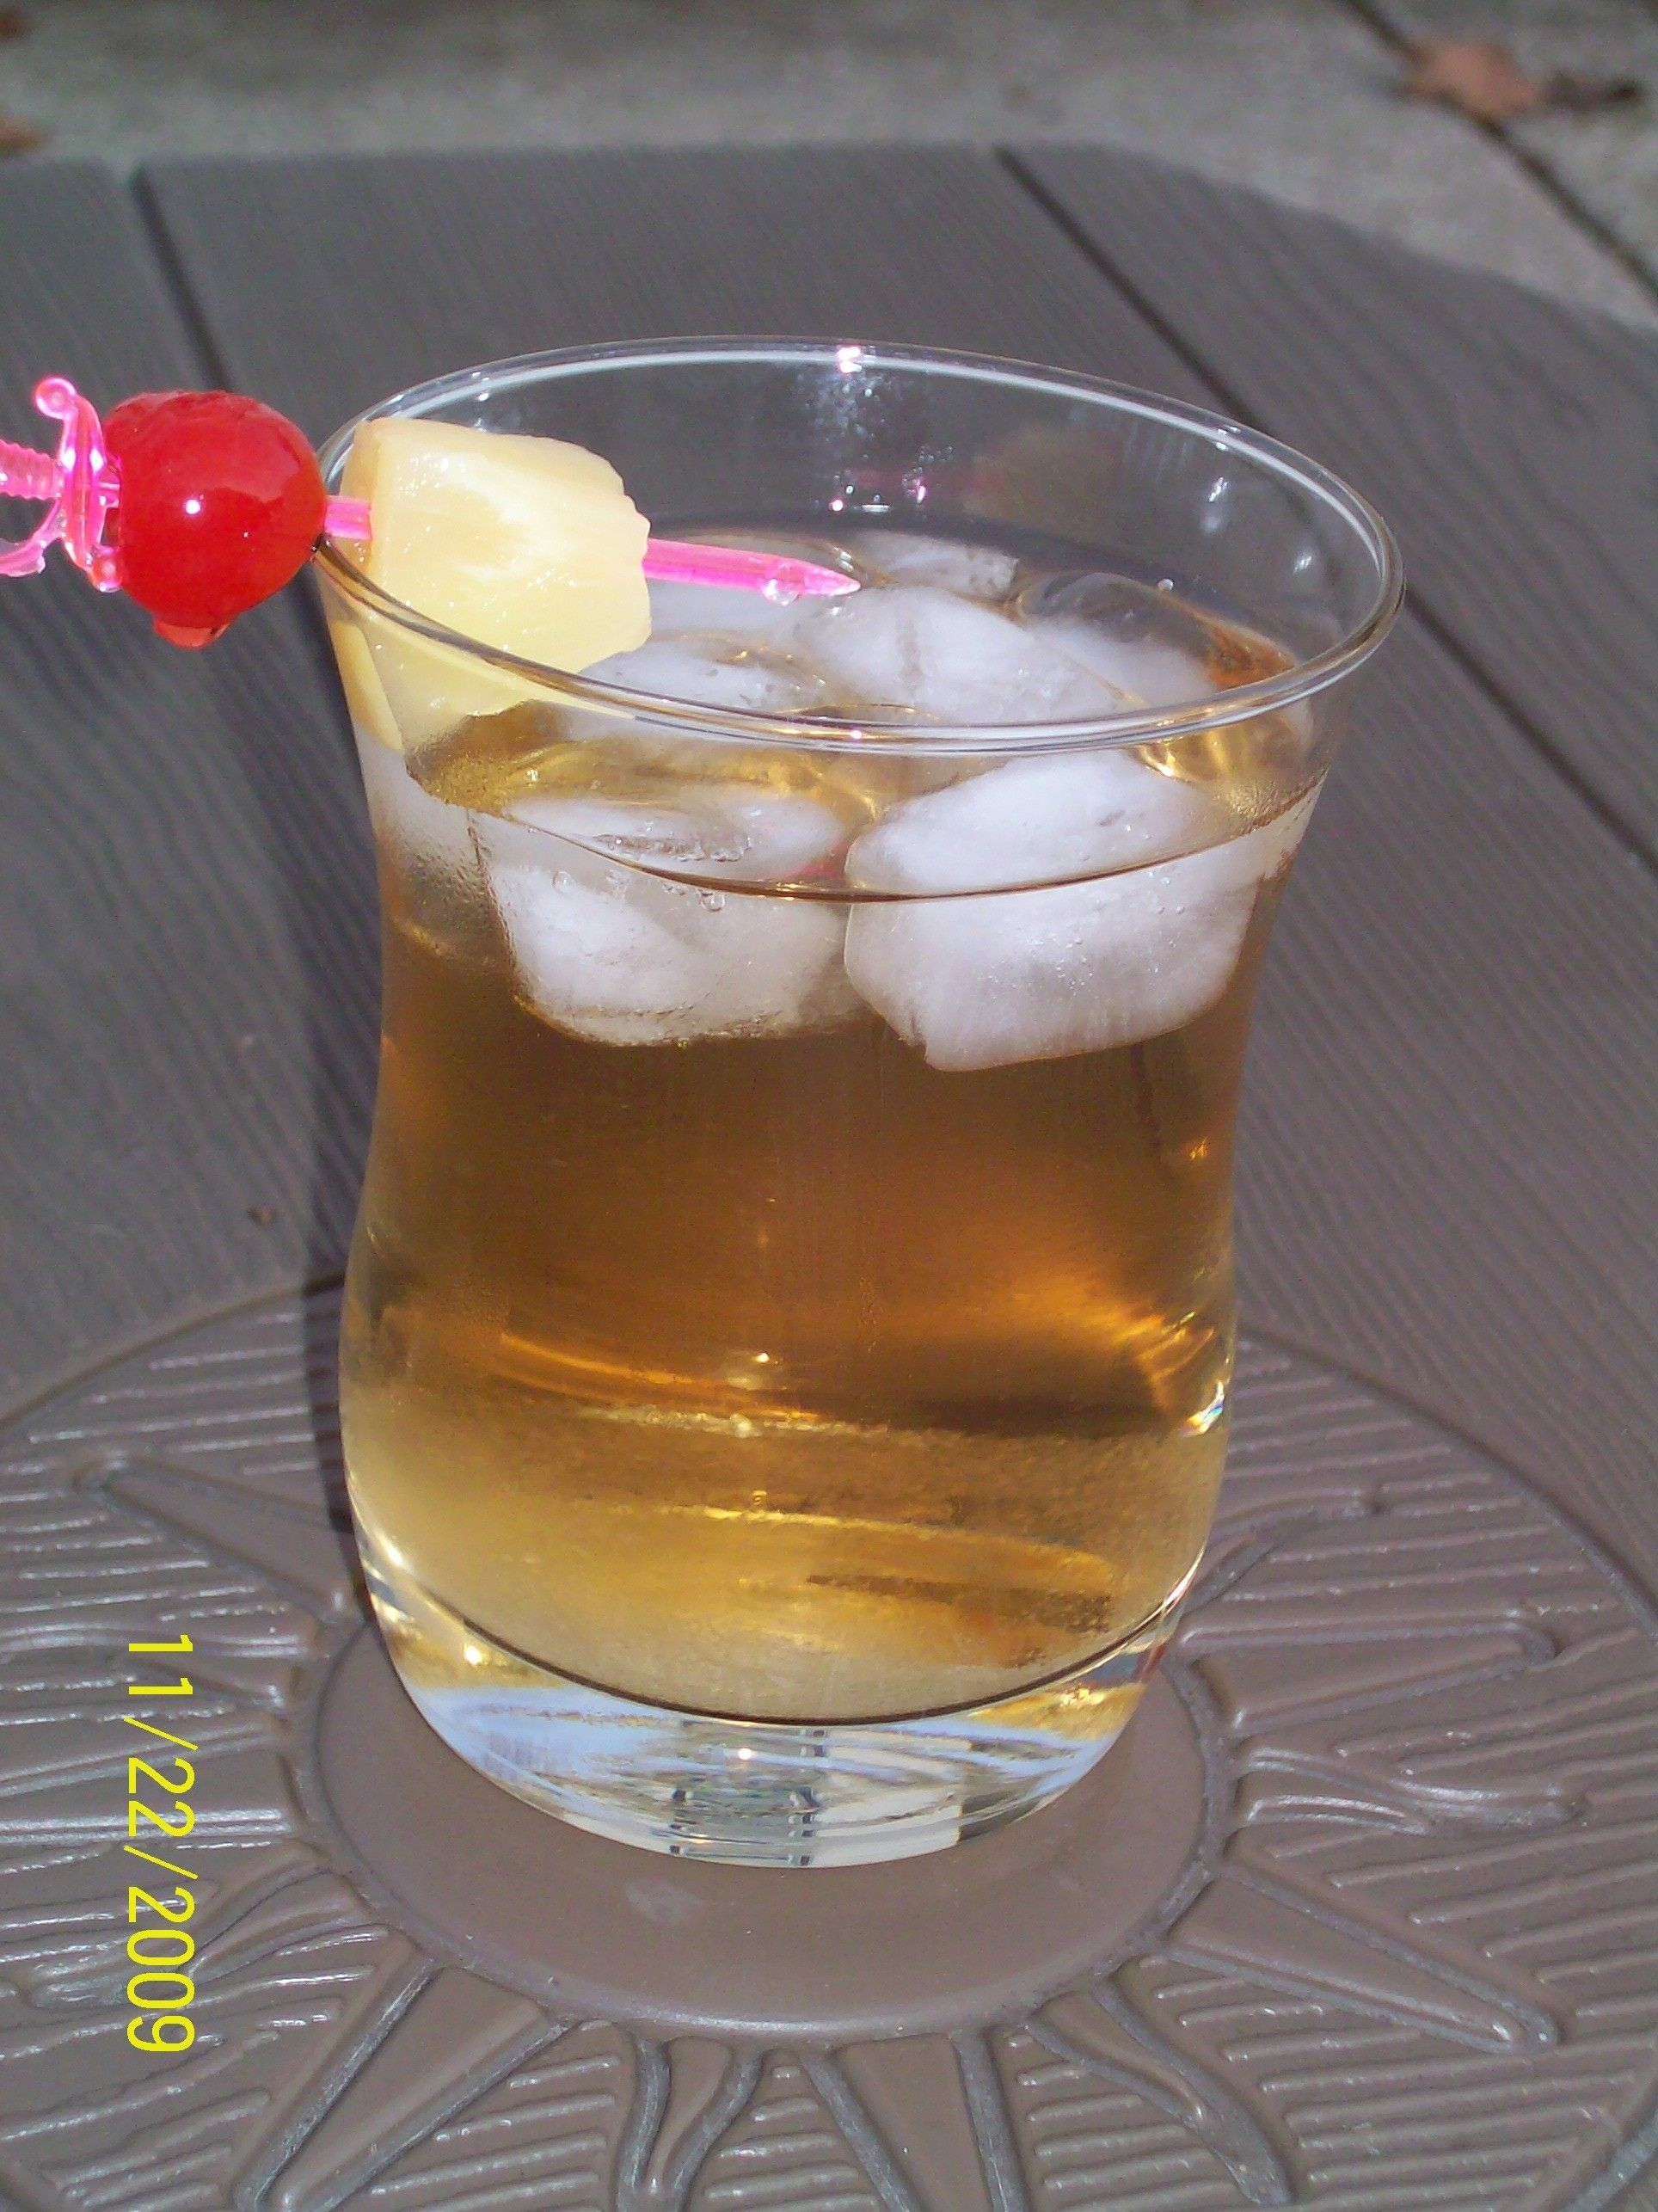 Homemade Wisconsin Old Fashioned Mix recipe - The Brandy old fashioned drink